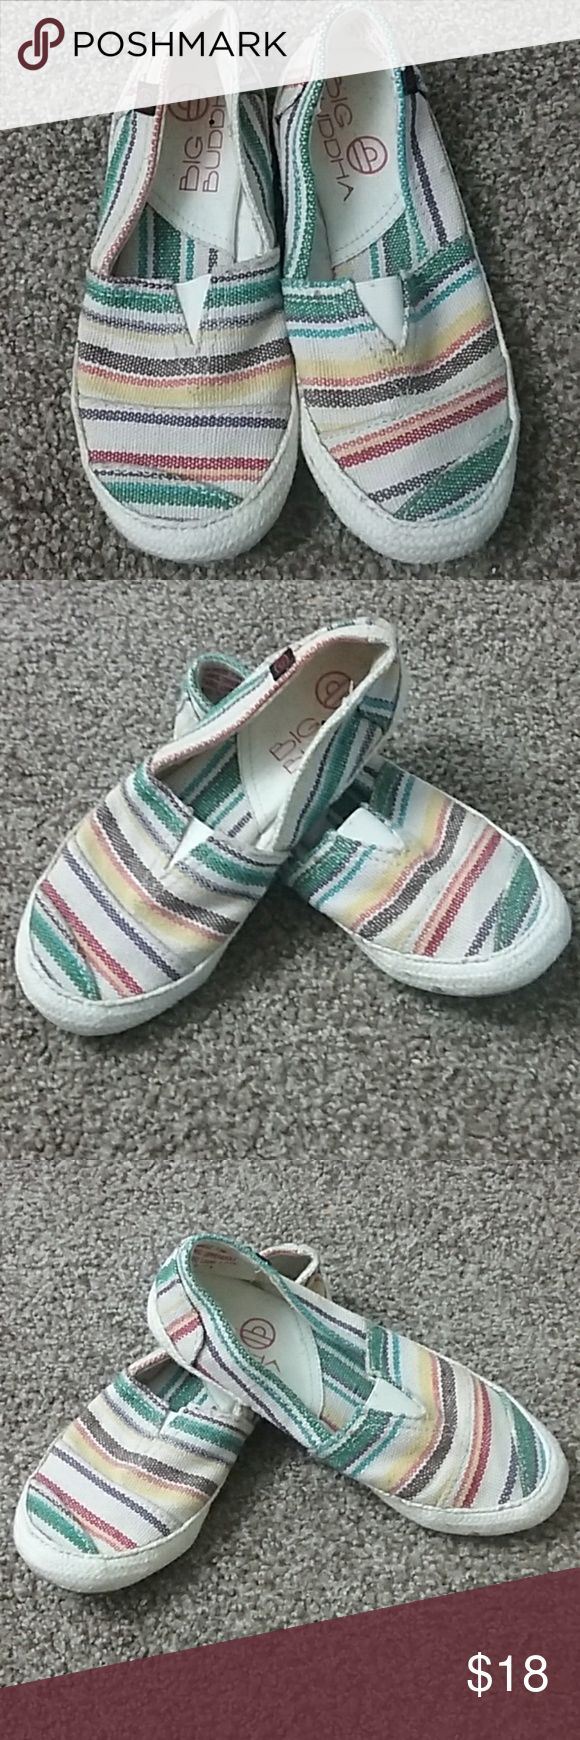 Big Buddah slip on loafers women's size 7.5 Big Buddah Multi colored slip on loafers Women's size 7.5 . Excellent preowned condition. Big Buddha Shoes Flats & Loafers